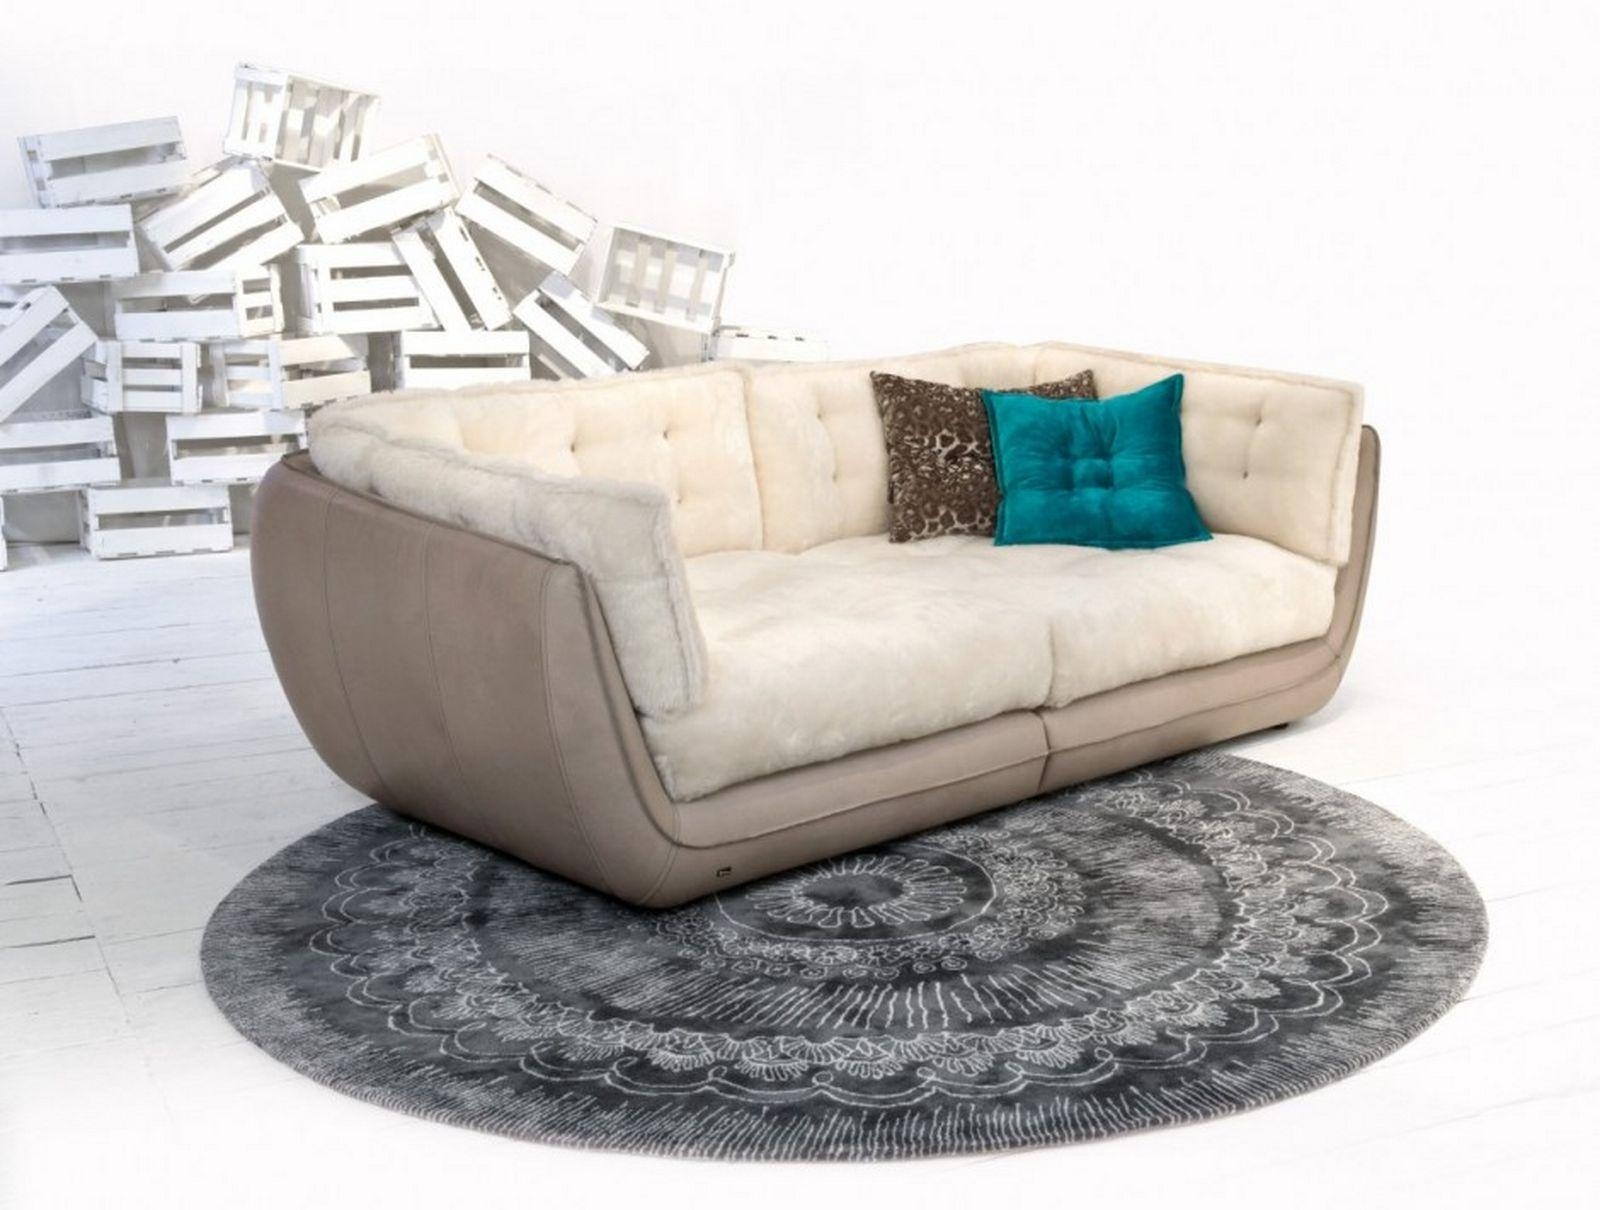 Unique Sofas Pertaining To Comfortable Sofas And Chairs (Image 20 of 20)